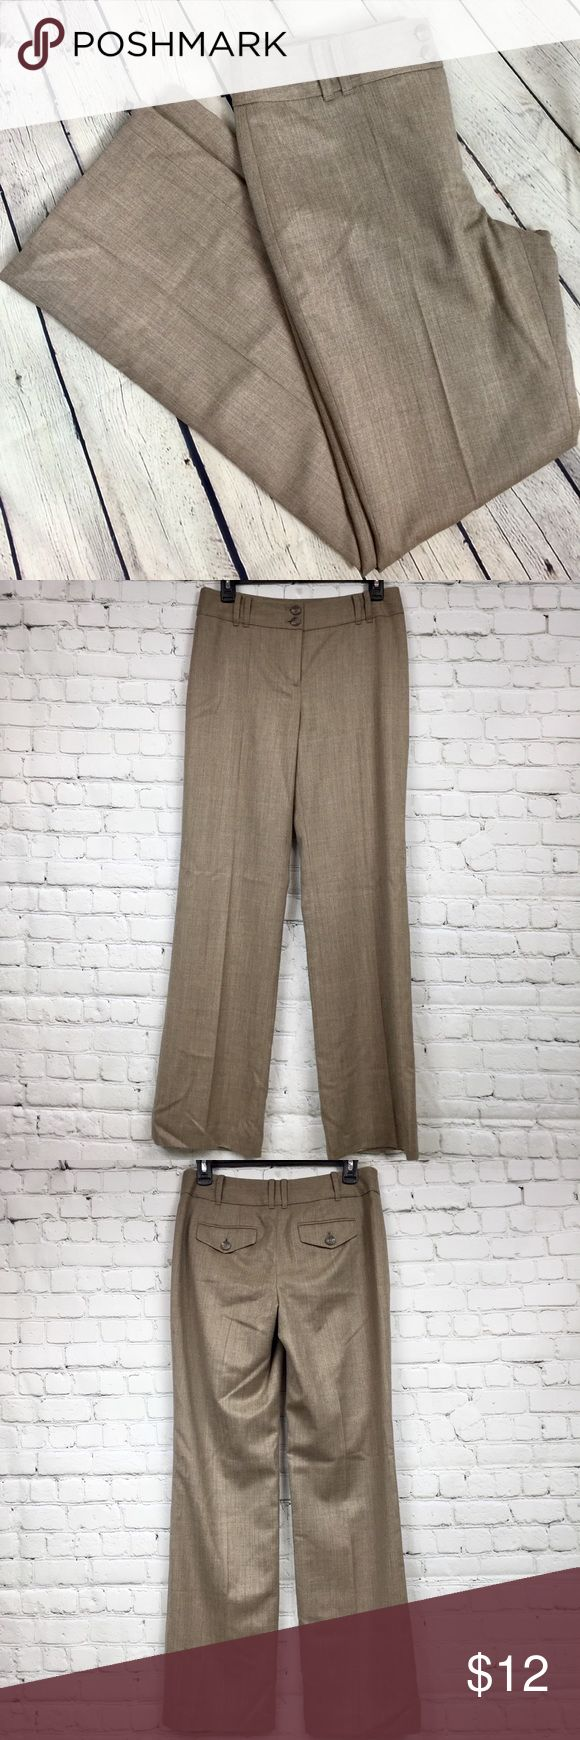 """Ann Taylor Loft career wear dress pants/slacks Sz2 Ann Taylor Loft career wear dress pants/slacks Trousers Size 2 Light brown color  100% wool Fully lined Dry clean See pic with arrow for minor imperfection on inside of pants (next to tag). This is not visible on exterior of pants. Waist 14 1/4"""" Rise 9 1/4"""" Inseam 31 1/2"""" LOFT Pants Trousers"""